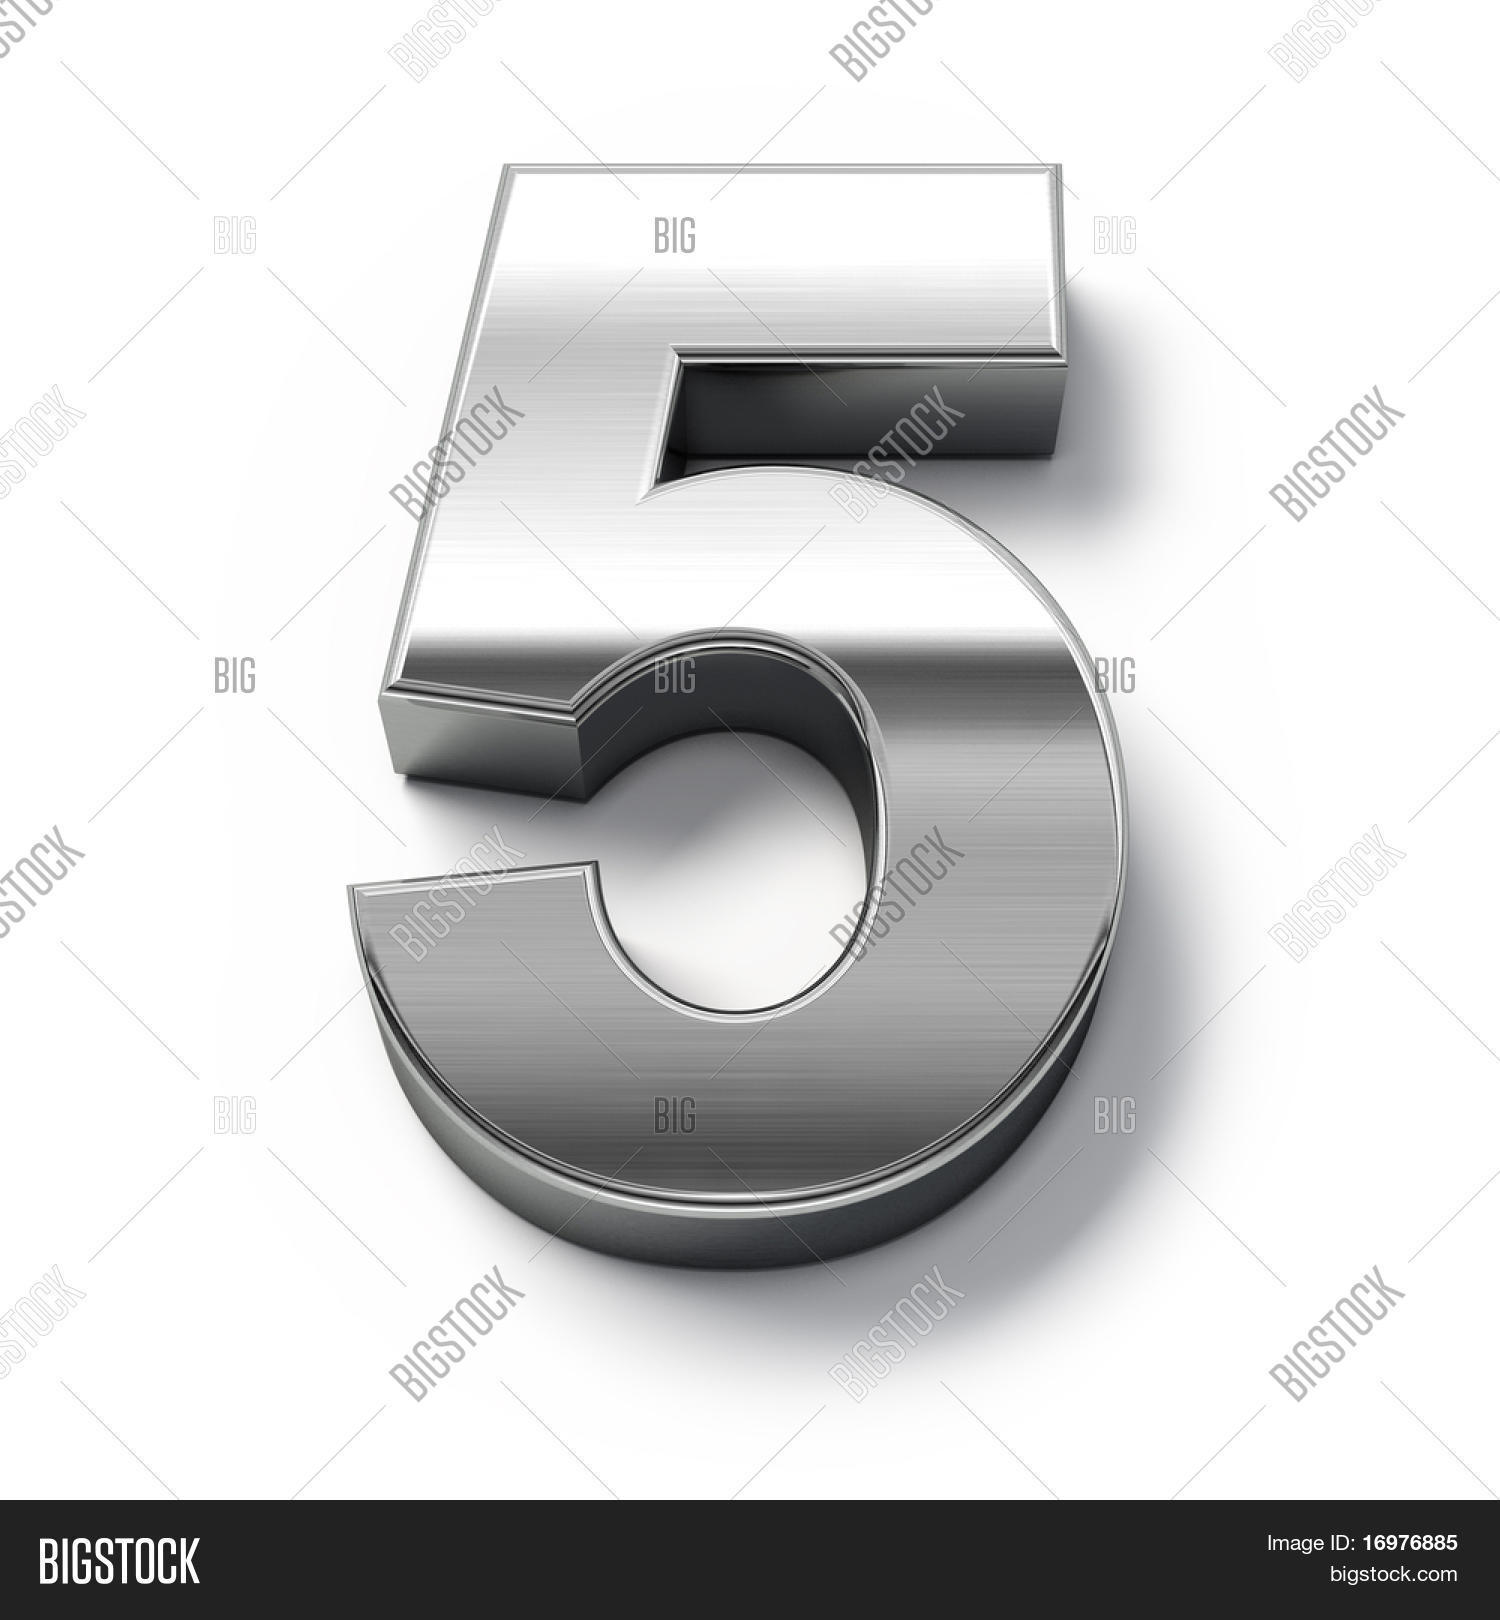 3d metal numbers number 5 image photo bigstock for Large 3d numbers